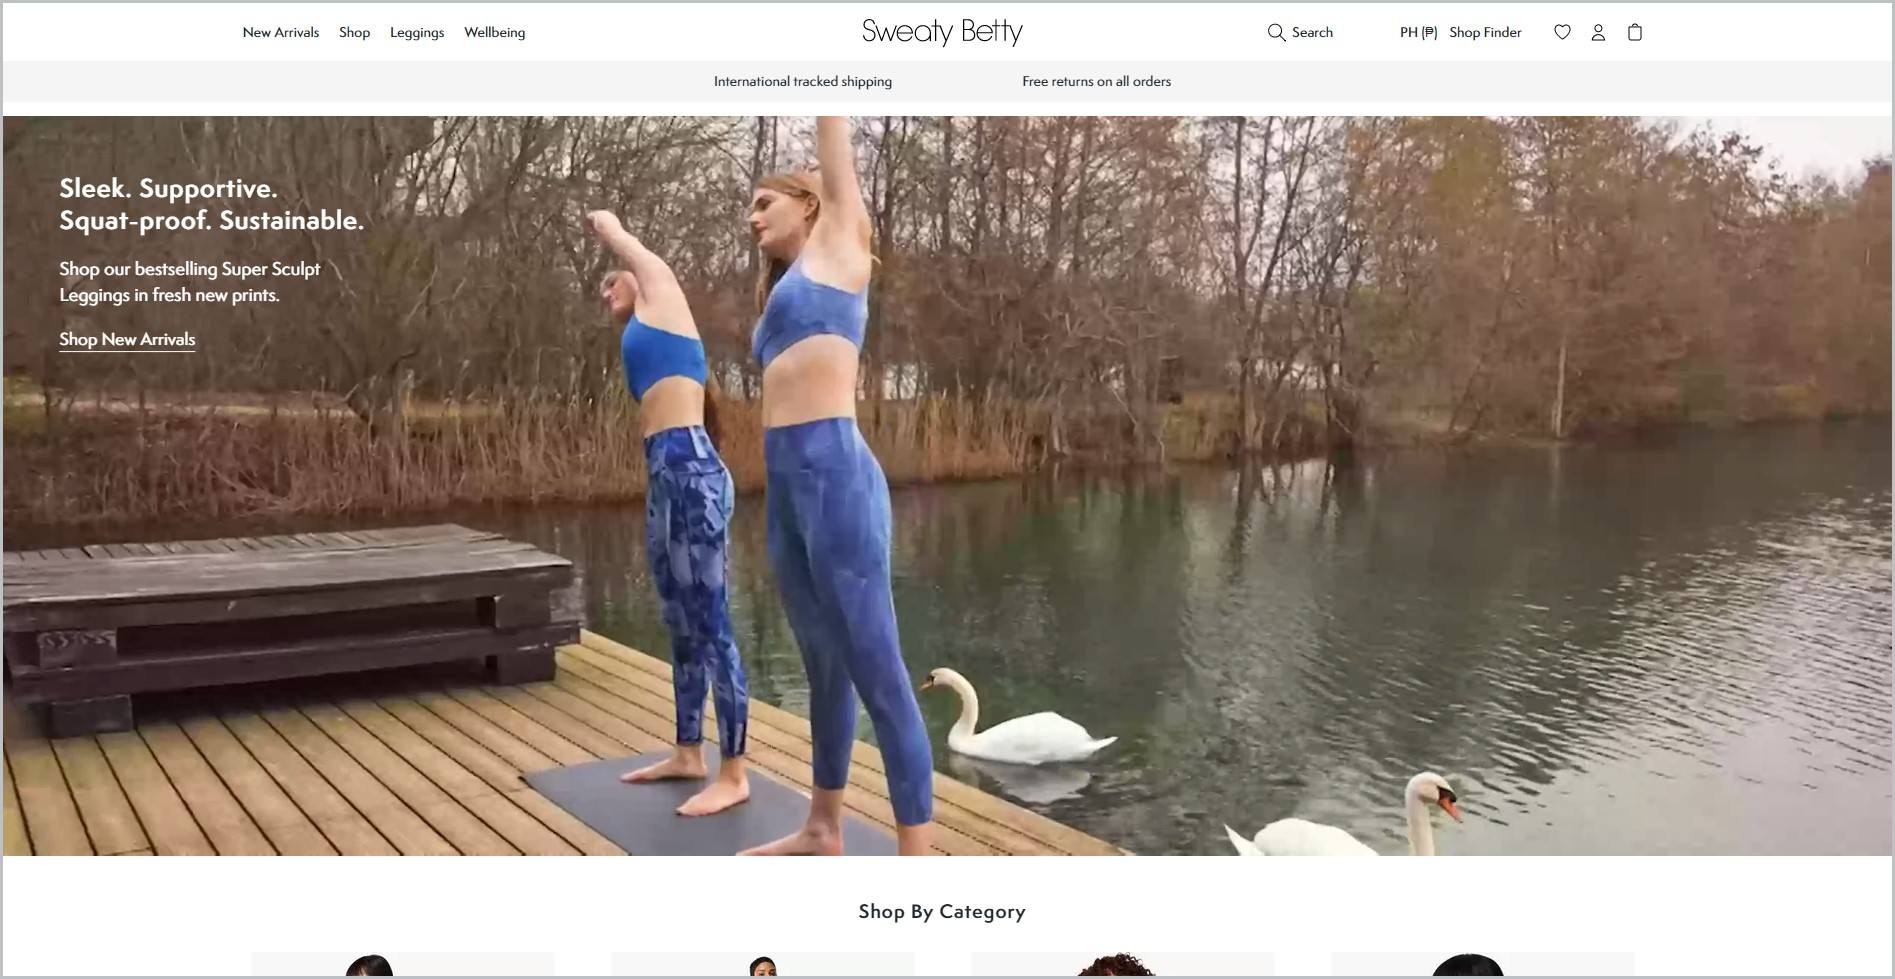 screenshot of Sweaty Betty homepage, with white header with the website's name and main navigation menu, it also features a couple of women wearing sports bra and leggings, stretching on a yoga mat